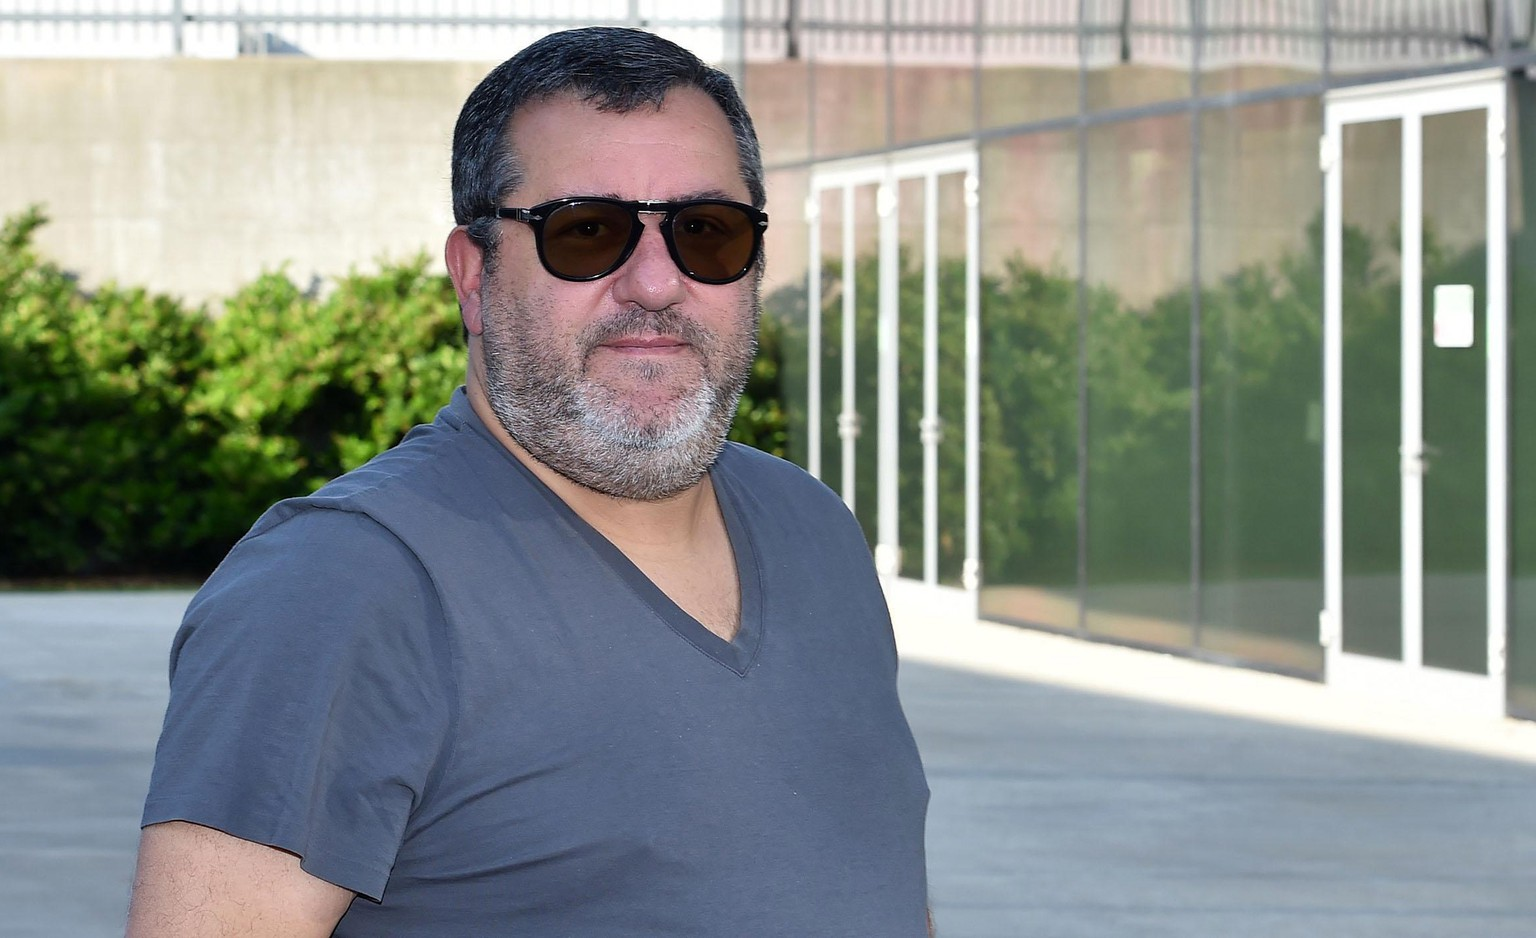 epa07721686 Italian-born Dutch soccer agent Mino Raiola arrives at Juventus Medical Center in Turin, Italy, 17 July 2019. Raiola accompanied his client Dutch defender Matthijs de Ligt who is undergoing medical exams with Juventus ahead of his transfer from Ajax.  EPA/Alessandro Di Marco